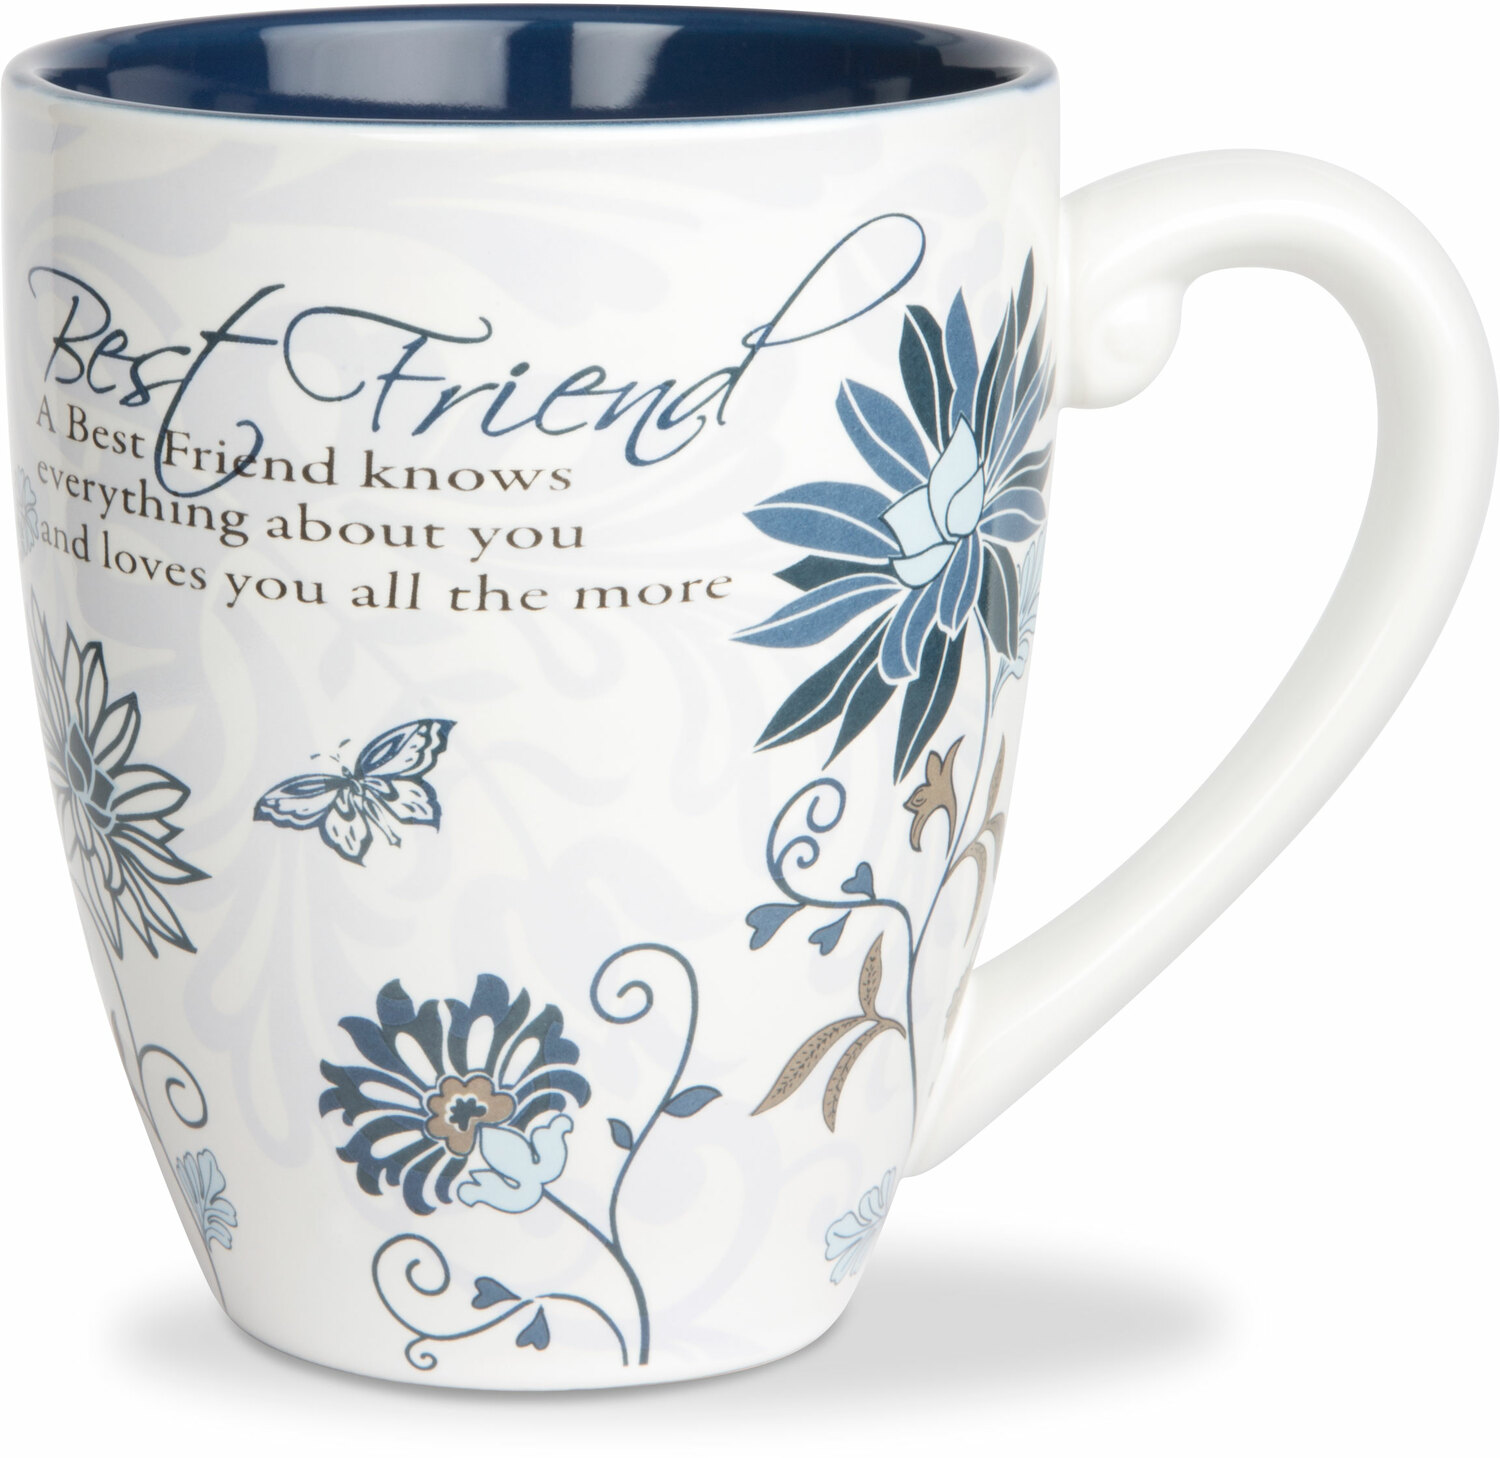 Best Friends by Mark My Words - Large Flower Print Best Friends Coffee Mug, 20 oz